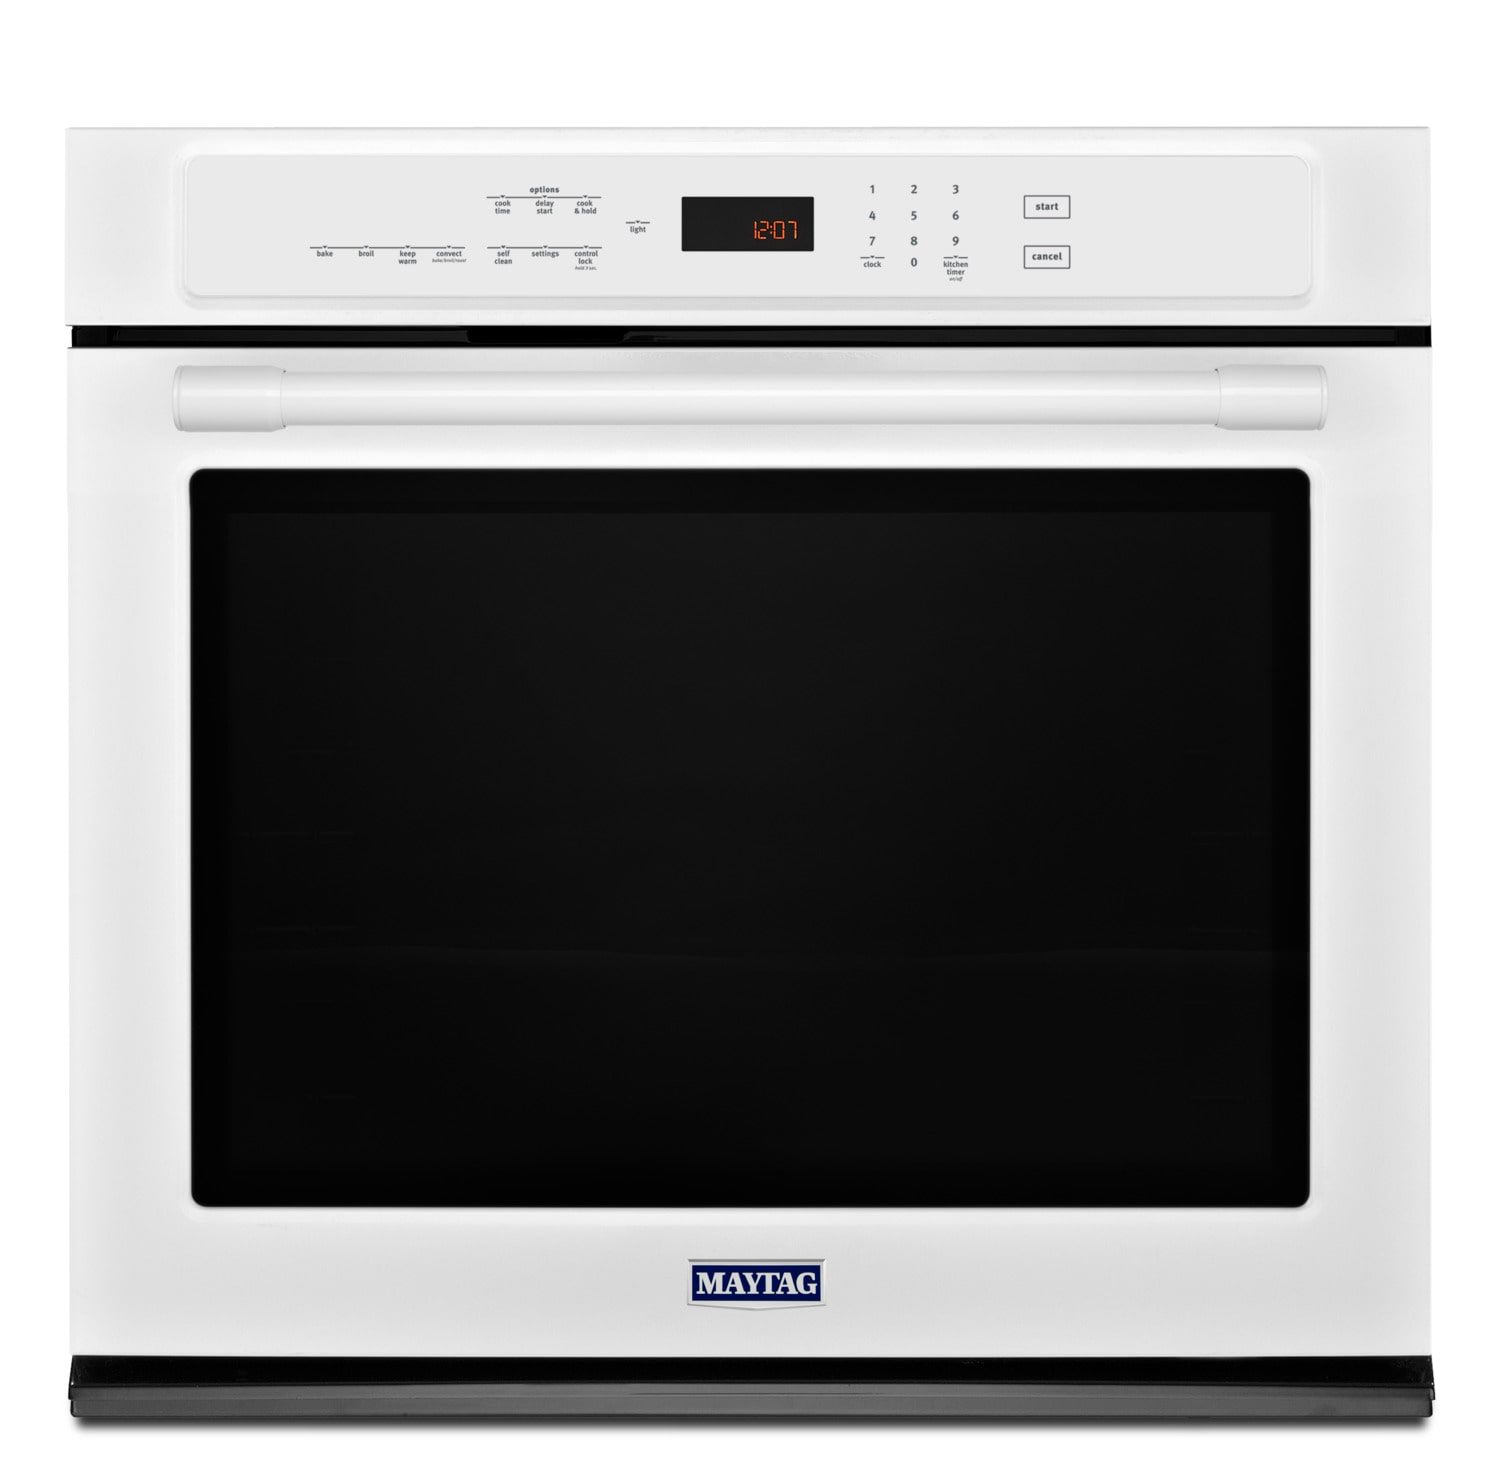 Maytag White Electric Convection Wall Oven (4.3 Cu. Ft.) - MEW9527FW